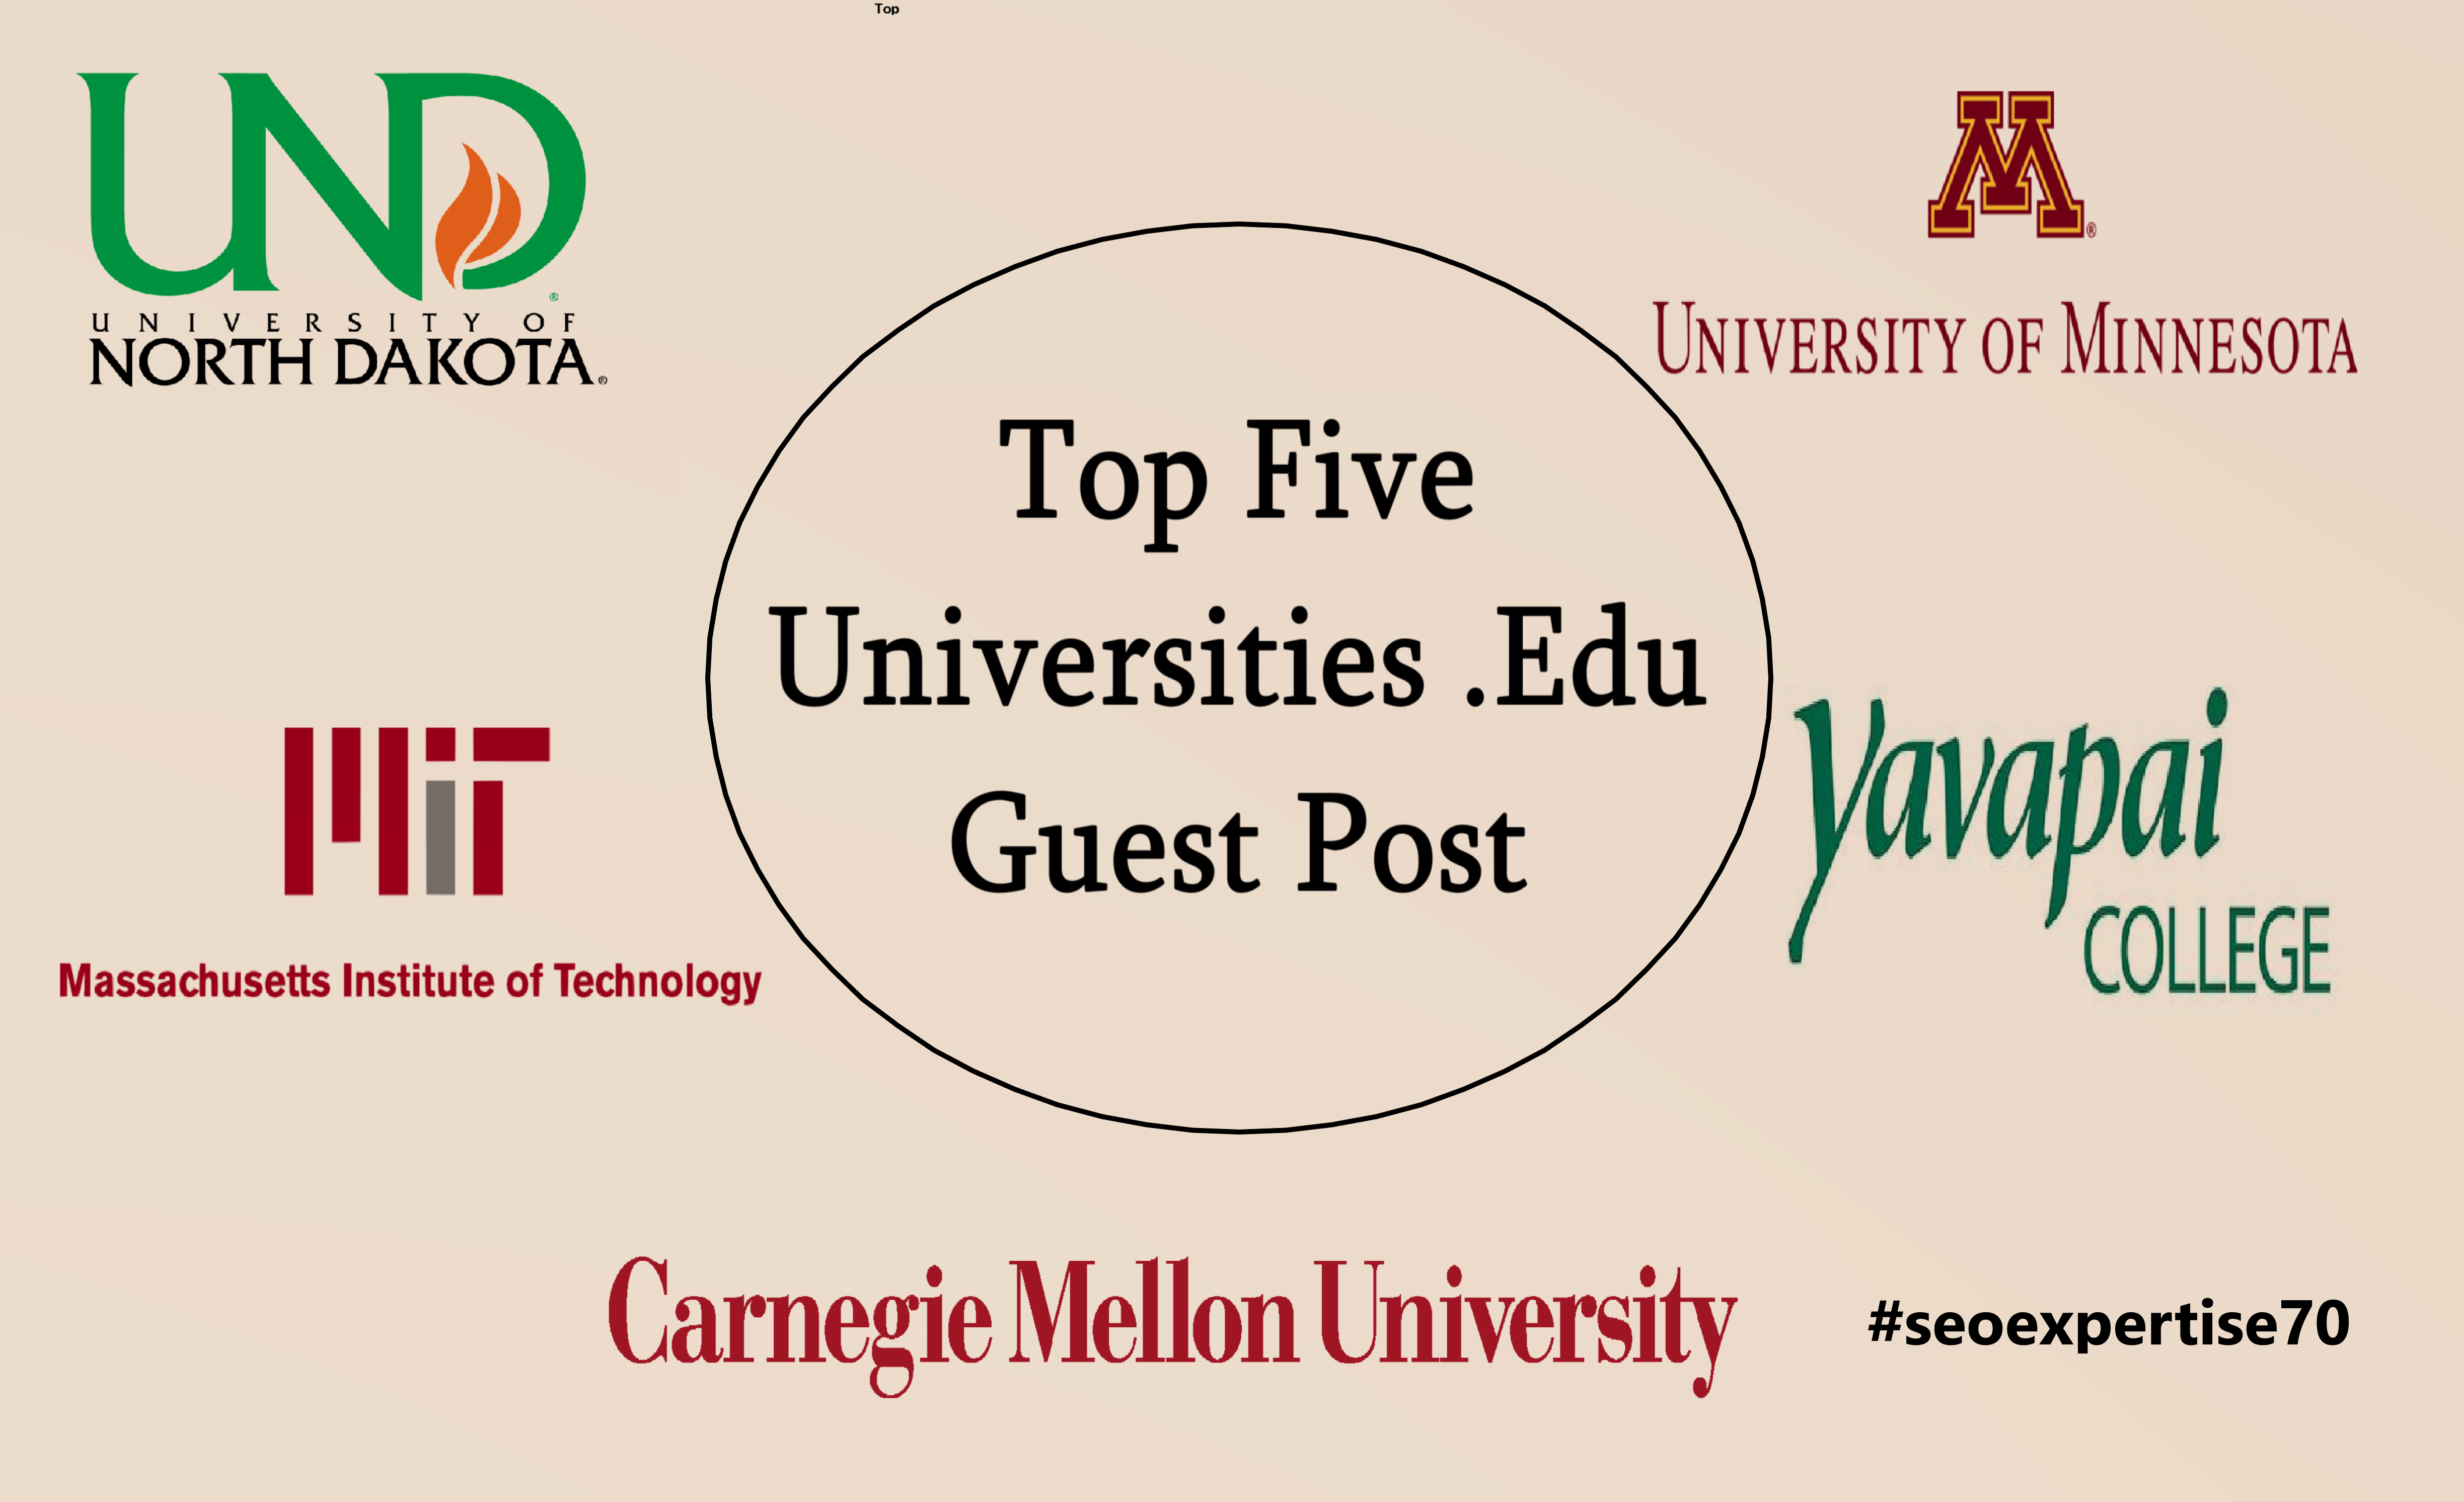 Guest Post Top 5 Education University with High DA90